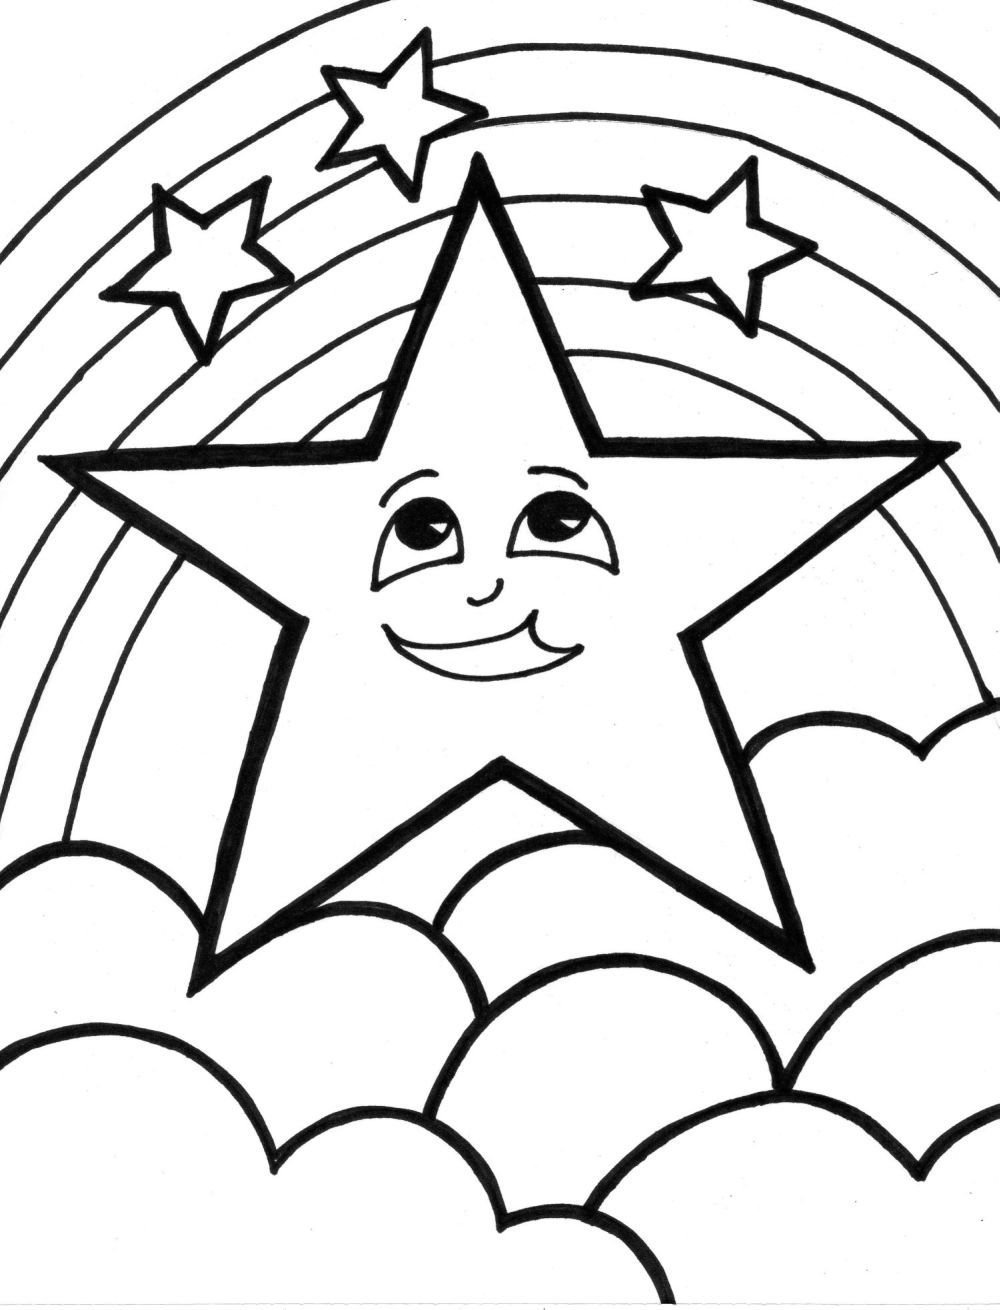 Colering Pages Star Coloring Pages Star Fish Coloring Pages Star Night Coloring Pages Shape Coloring Pages Star Coloring Pages Free Coloring Pages